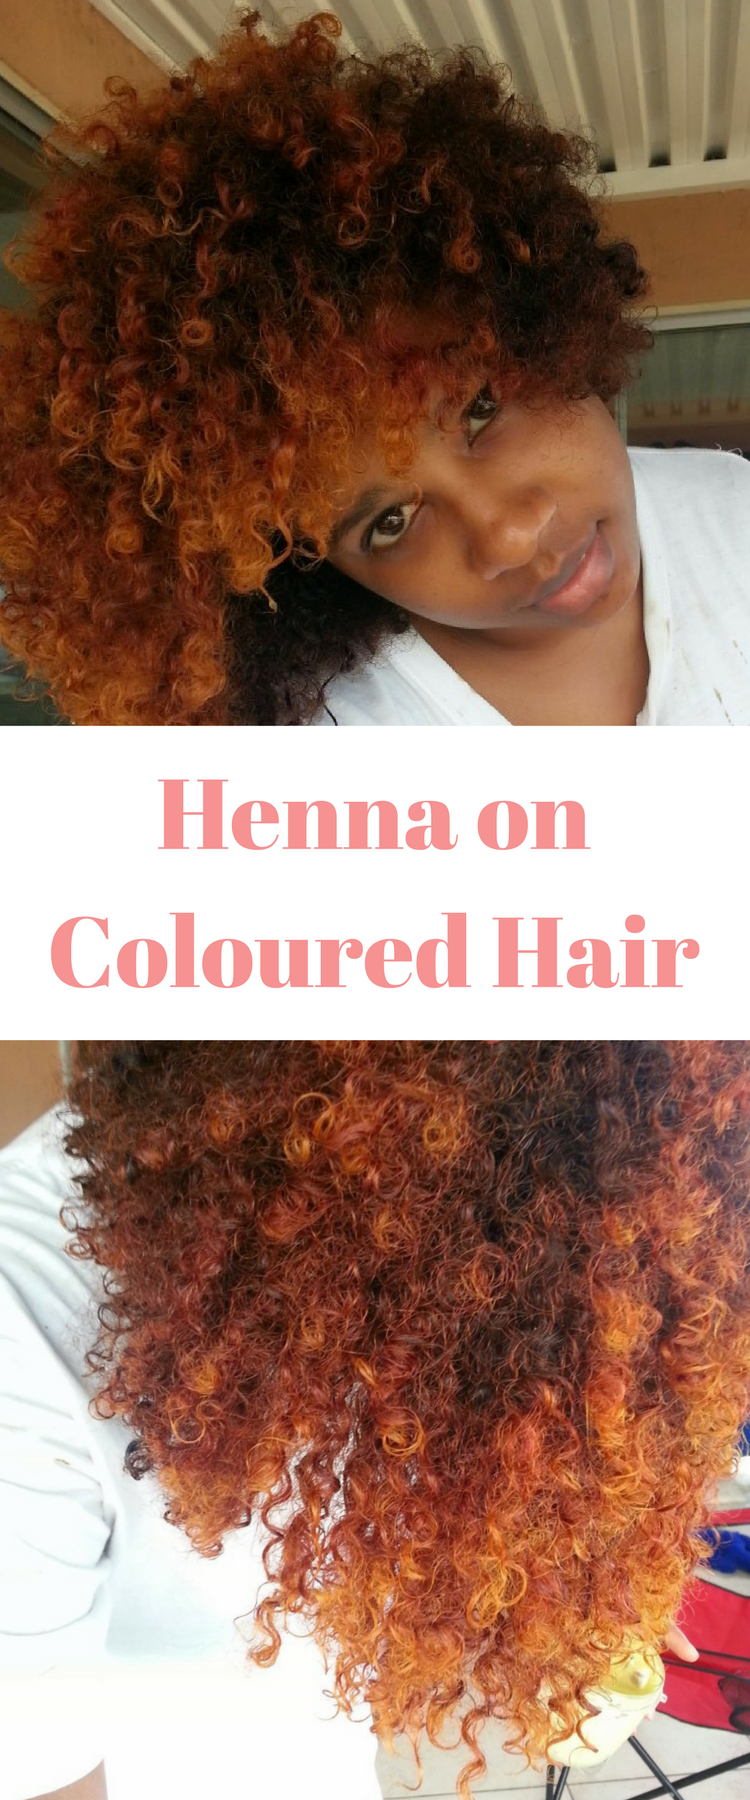 Henna treatment for hair that was previously coloured chemically. Henna is awesome on natural hair, see the benefits of henna and give this tutorial a try.